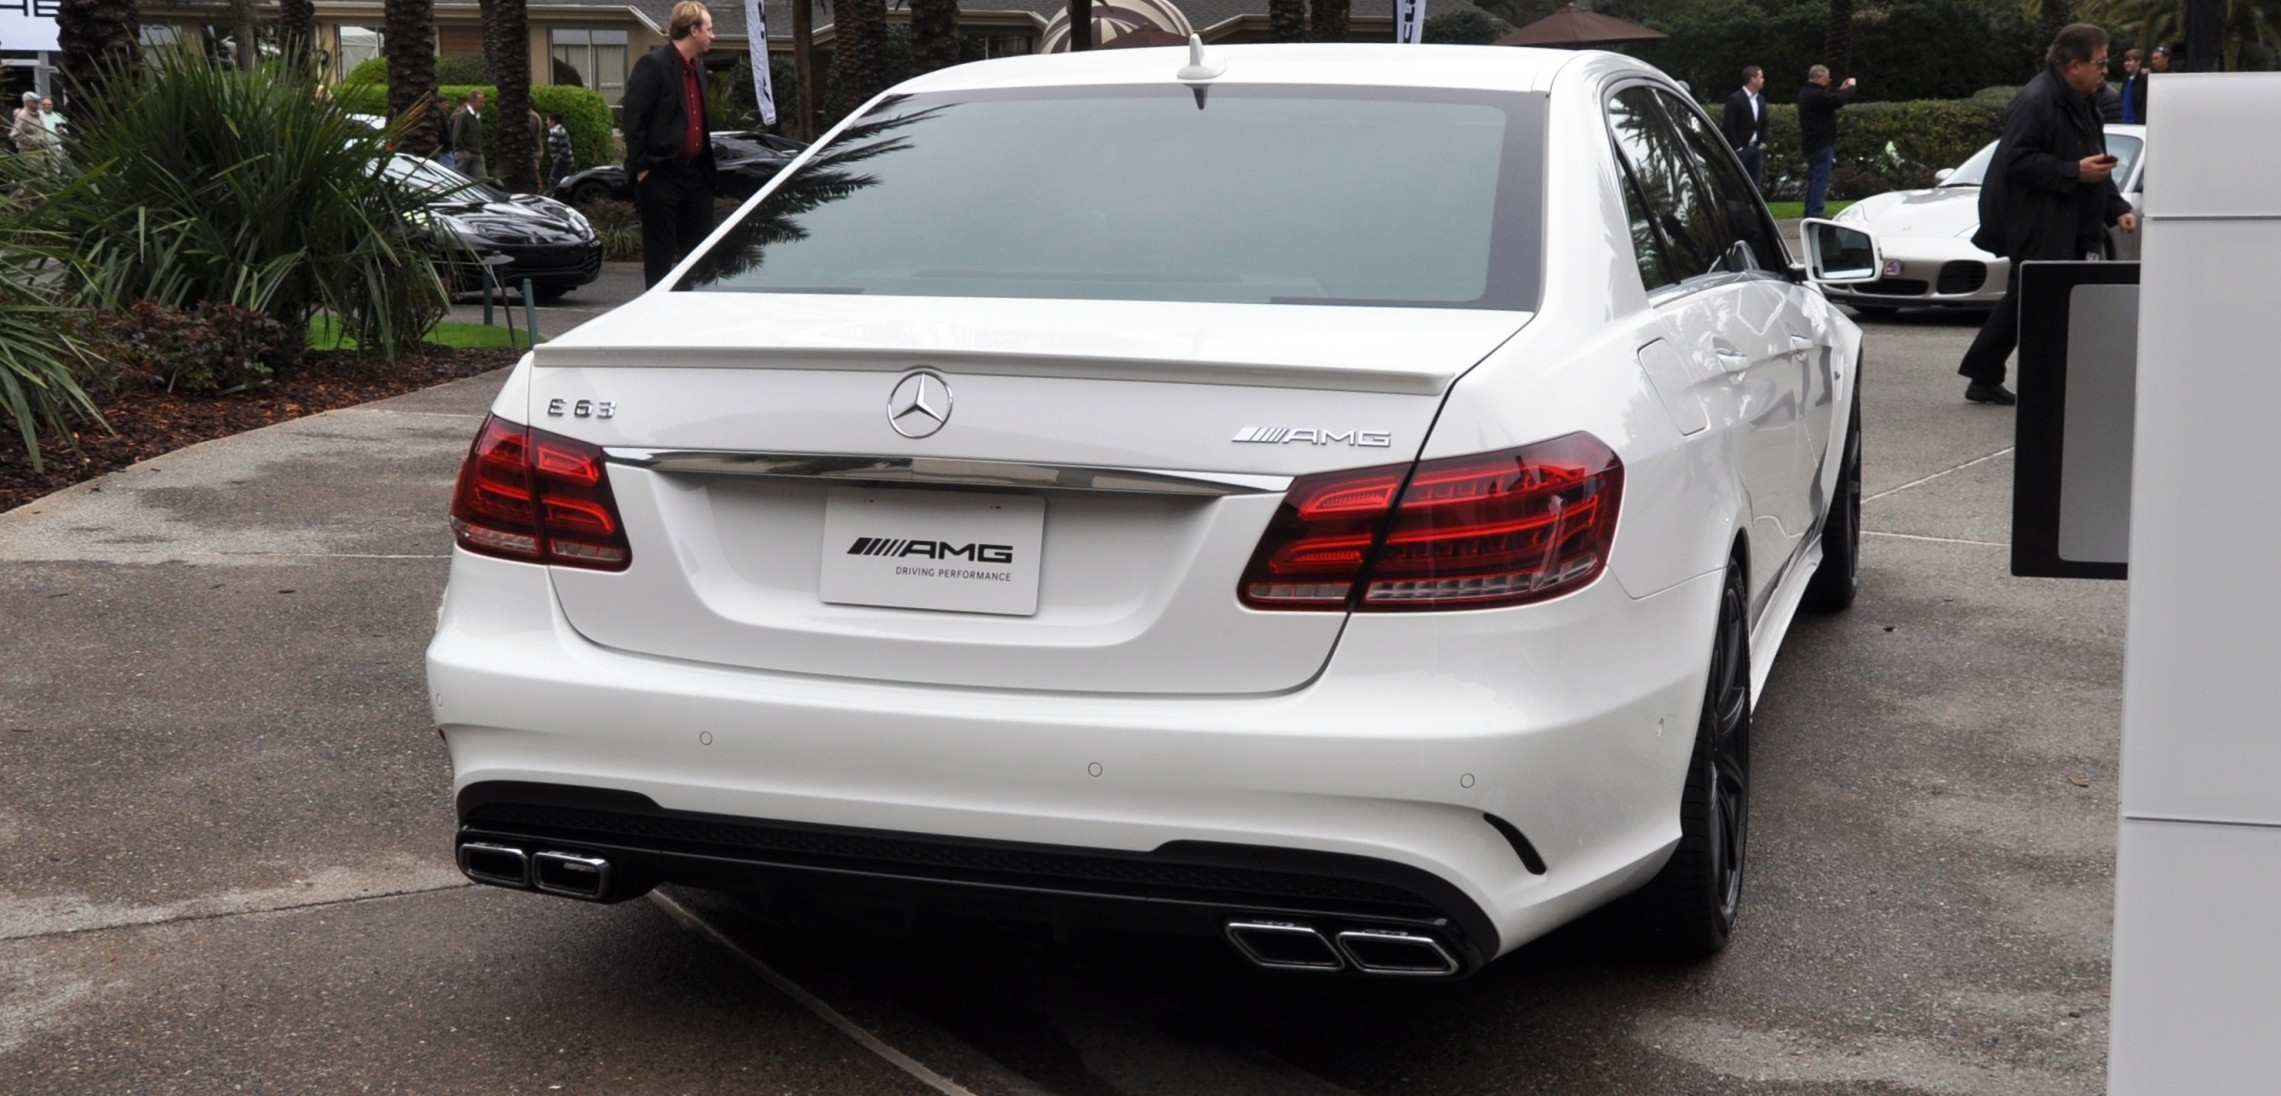 Previous Image. The White Knight -- 2014 Mercedes-Benz E63 AMG 4Matic S-Model  On